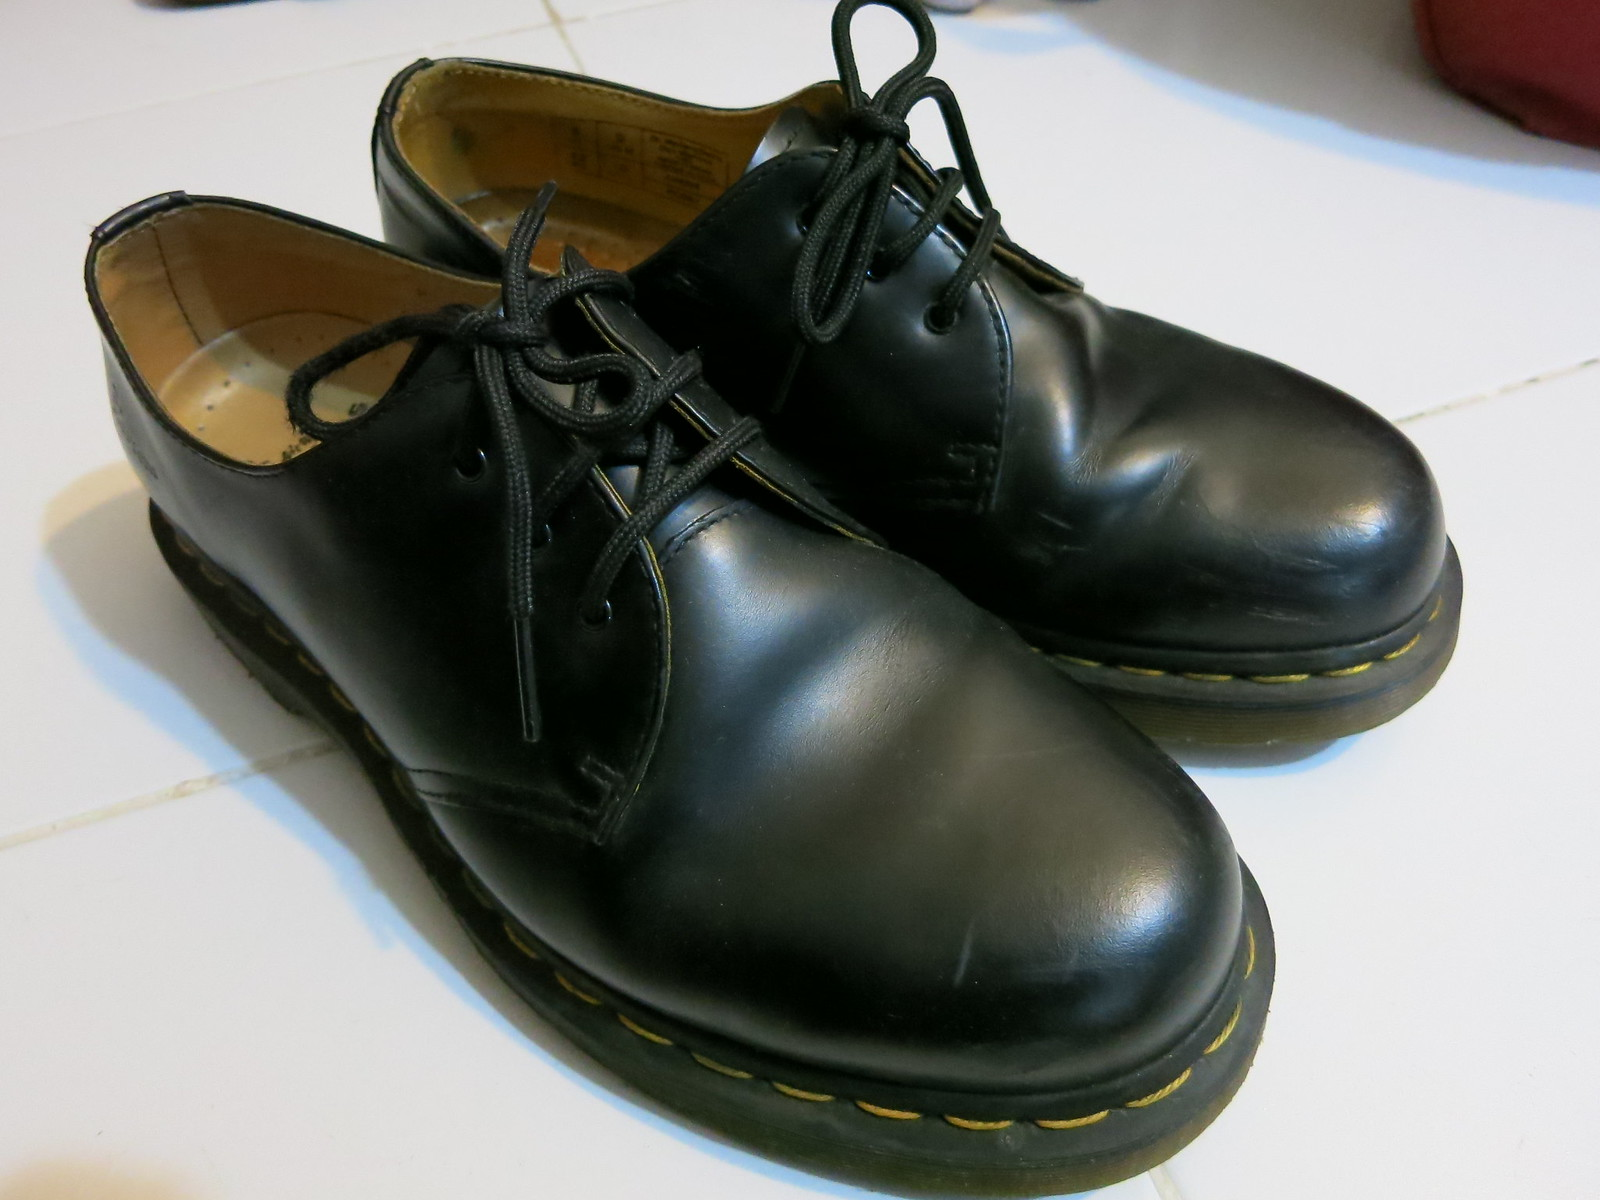 31/3] Clearance! REDWINGS|Dr  Martens|Nudie Wallet & Jeans